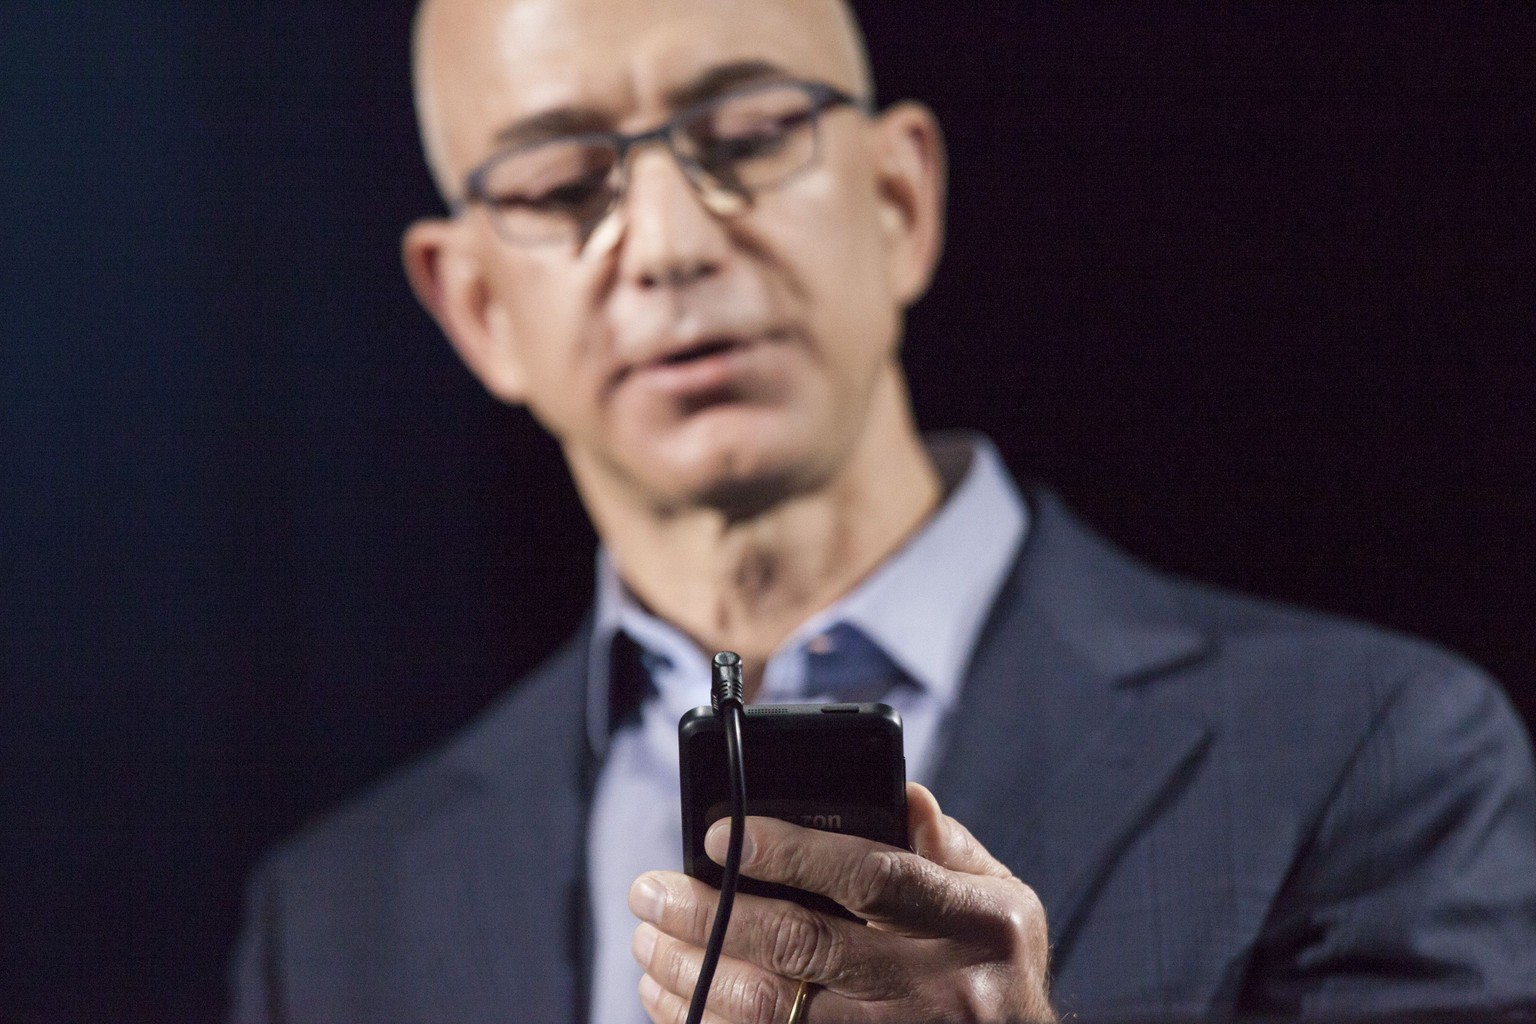 SEATTLE, WA - JUNE 18: Amazon.com founder and CEO Jeff Bezos demonstrates the company's first smartphone, the Fire Phone, on June 18, 2014 in Seattle, Washington. The much-anticipated device is available for pre-order today and is available exclusively with AT&T service.   David Ryder/Getty Images/AFP == FOR NEWSPAPERS, INTERNET, TELCOS & TELEVISION USE ONLY ==